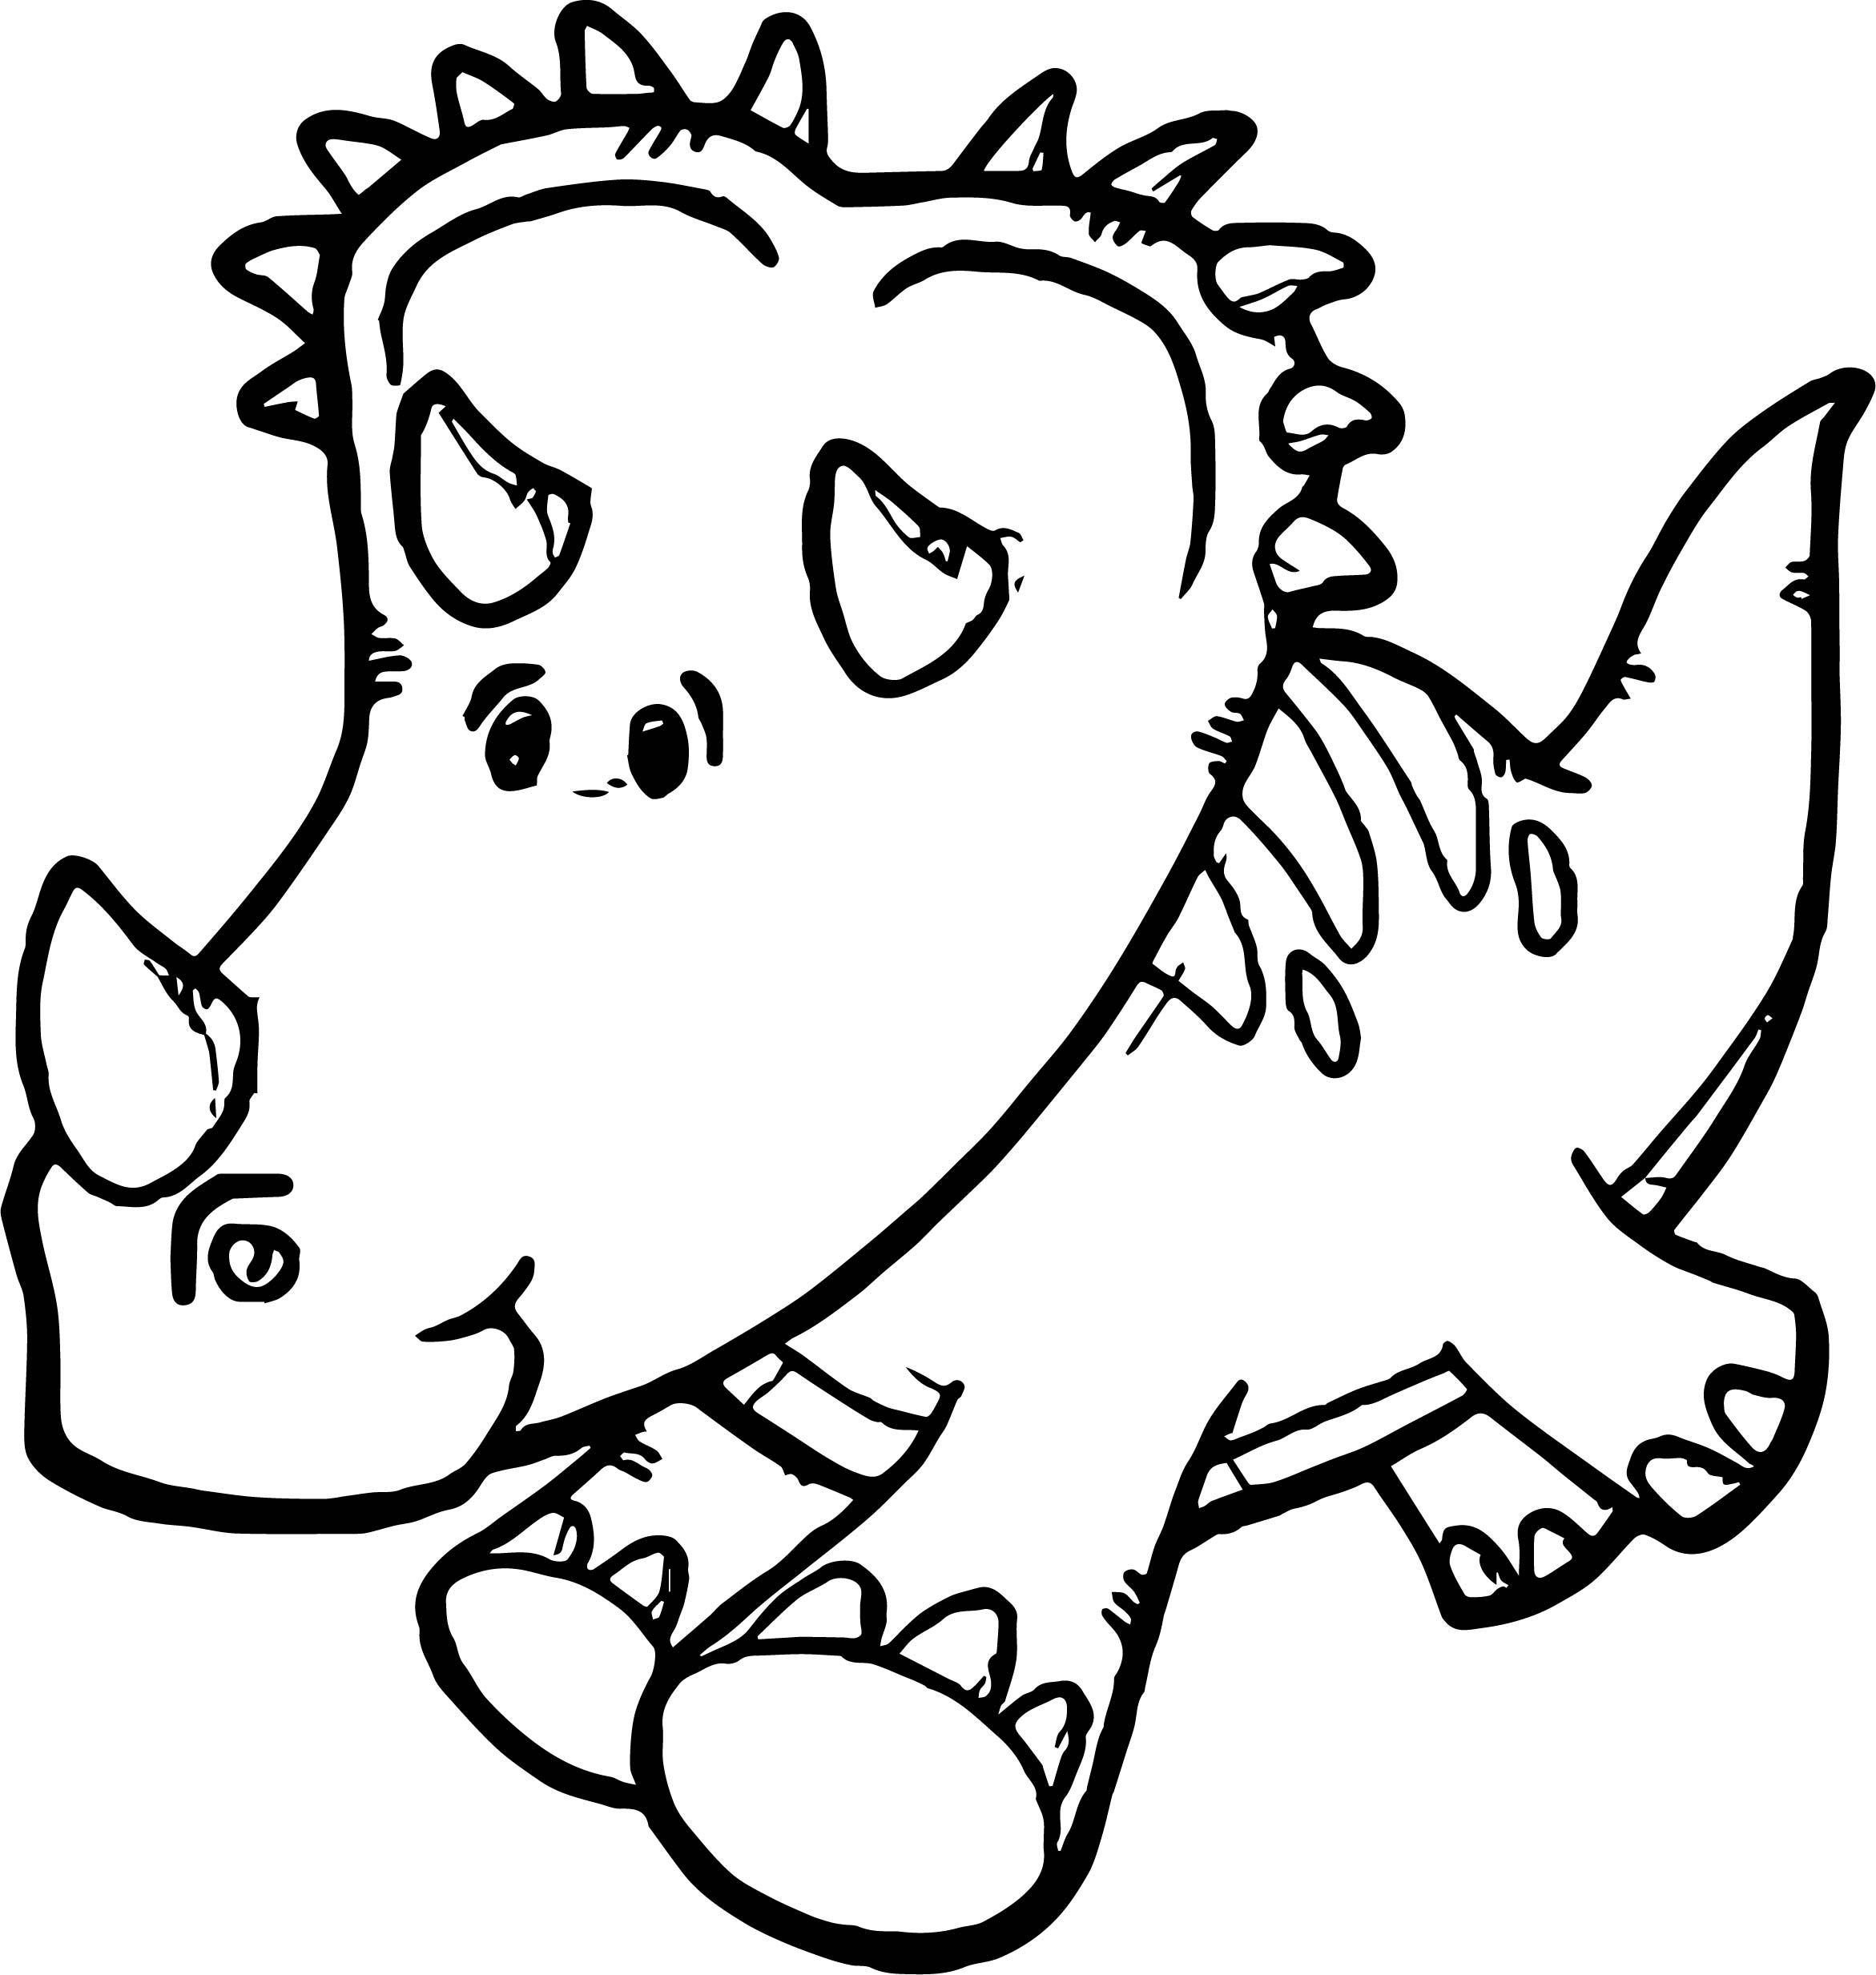 Cool Dinosaur Run Coloring Page Coloring Pages Dinosaur Color